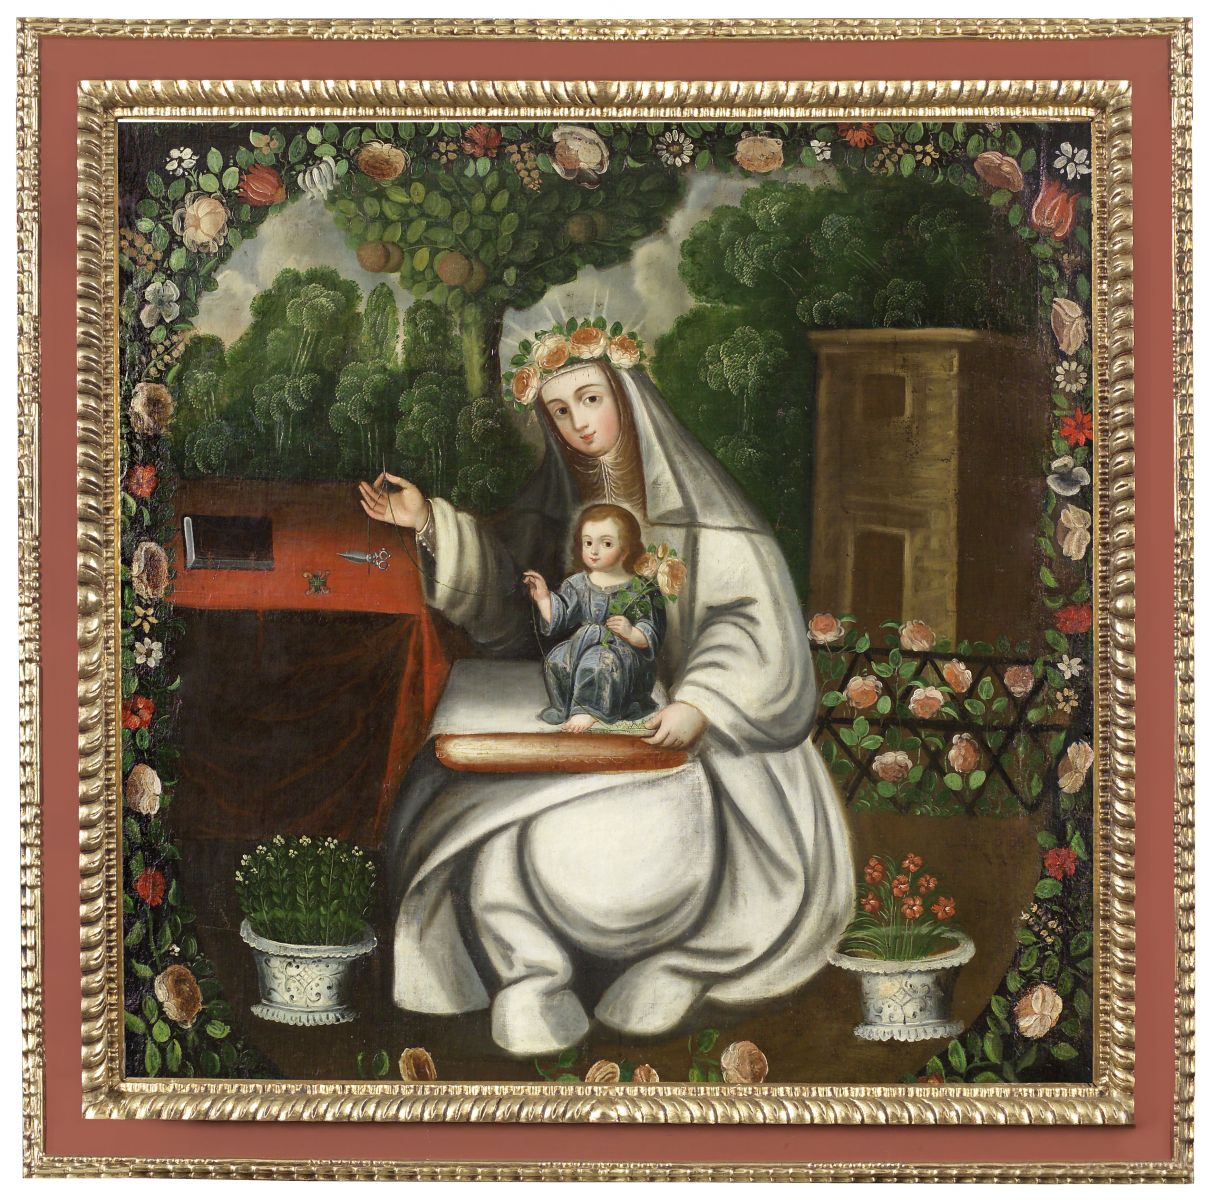 Cuzco school painting of Saint Rose of Lima, 18th century, Barbosa-Stern Collection, Lima